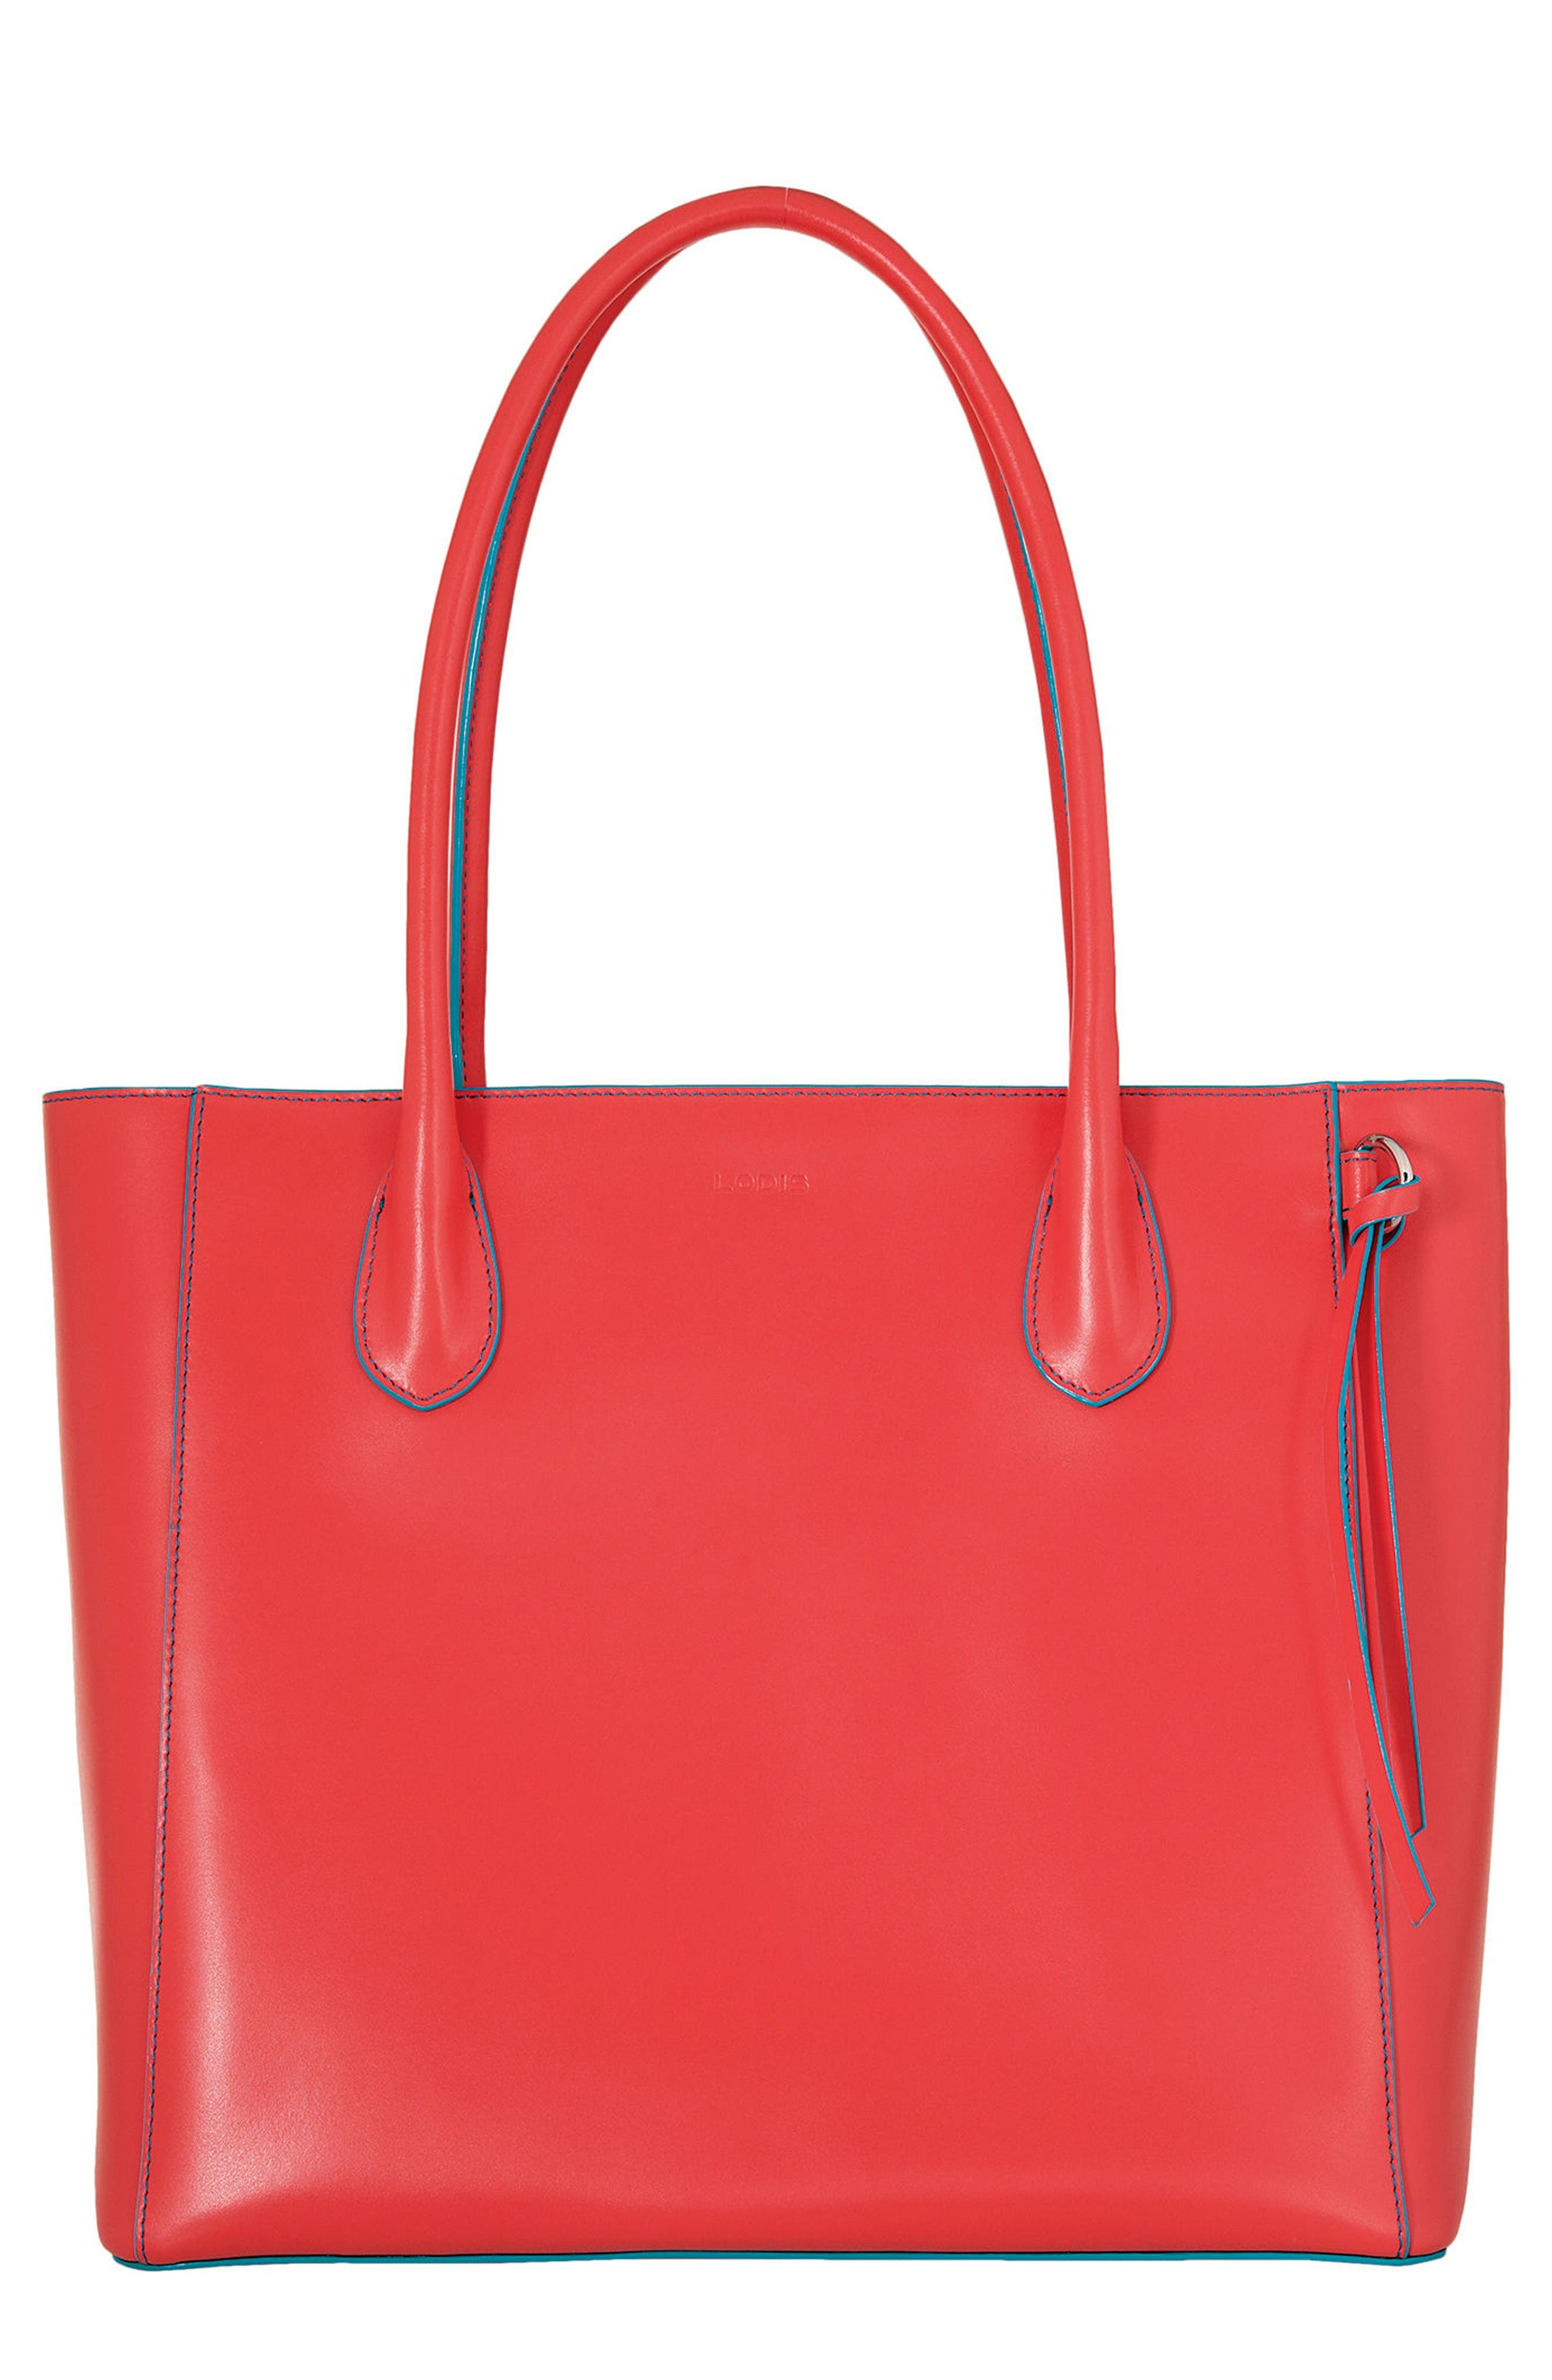 LODIS Cecily Leather Tote